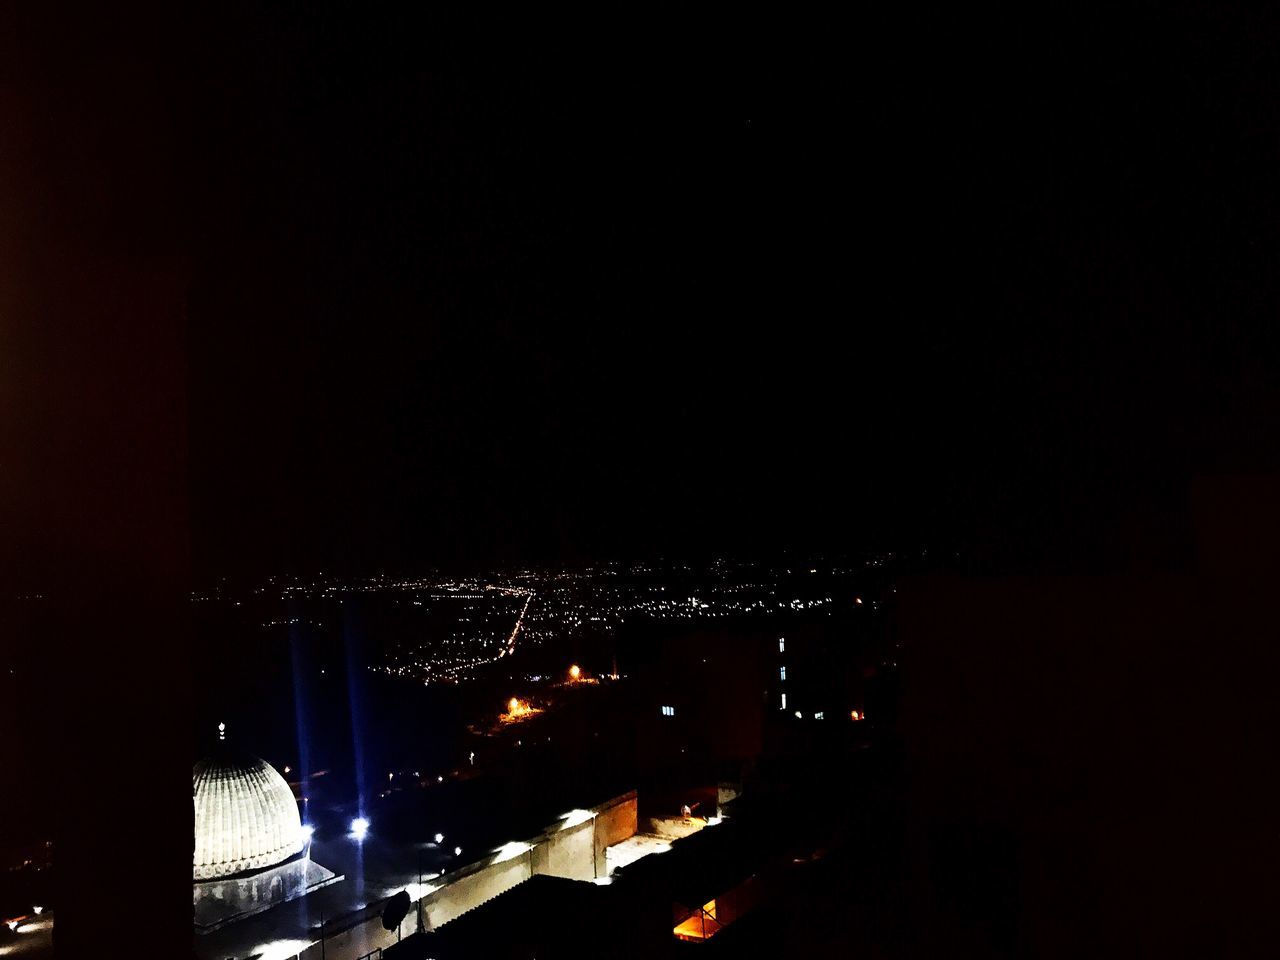 Mardin Mardingezi Night Nightphotography Night Lights Night Photography Landscape Landscape_Collection Landscape_photography First Eyeem Photo Turkey Türkiye Copy Space Illuminated Building Exterior City Built Structure Architecture Clear Sky No People Outdoors Industry Cityscape Taking Photos Taking Pictures